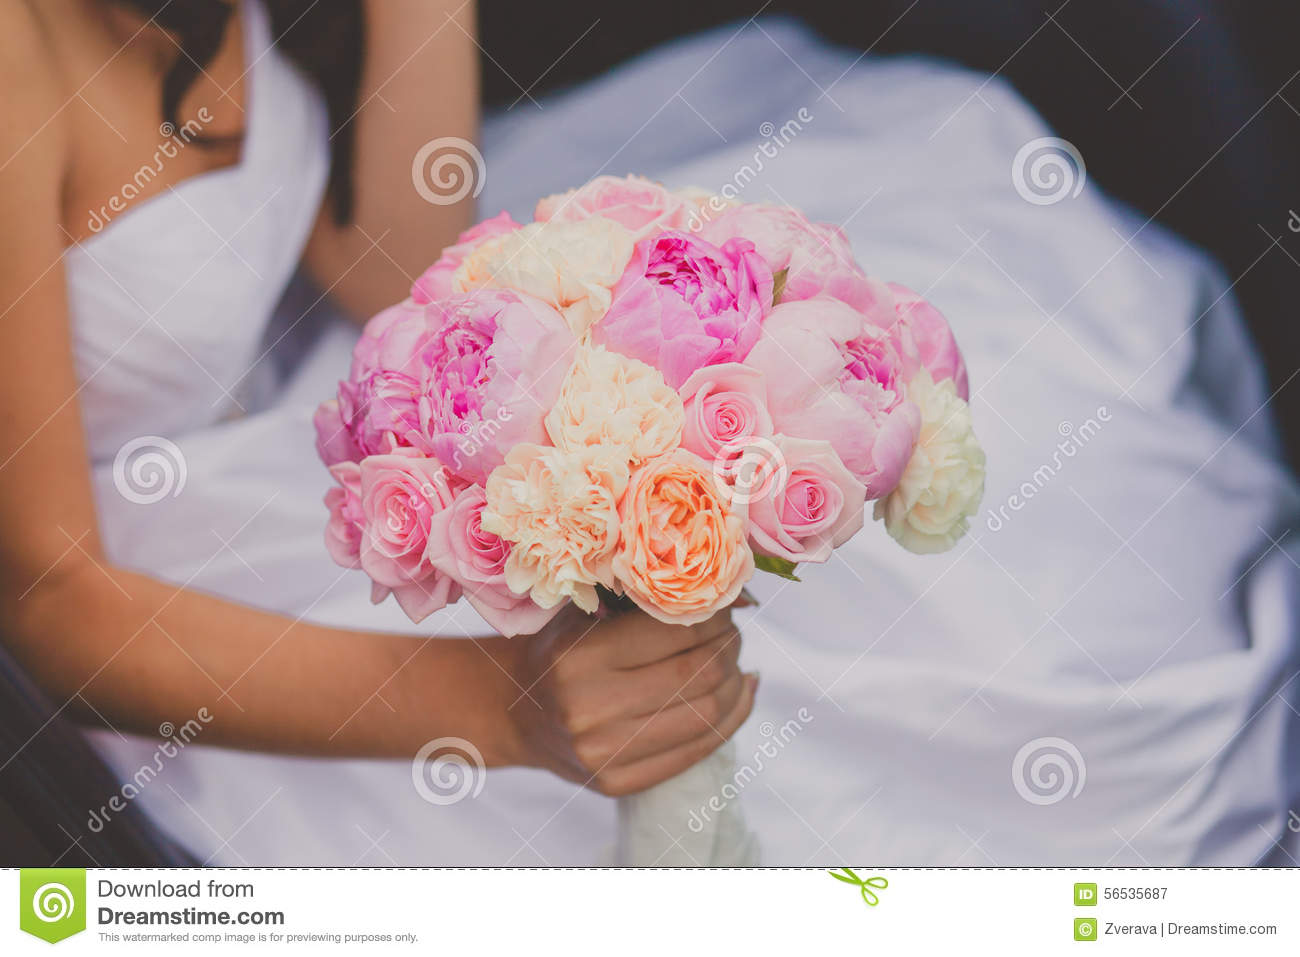 103 787 Bright Wedding Bouquet Photos Free Royalty Free Stock Photos From Dreamstime